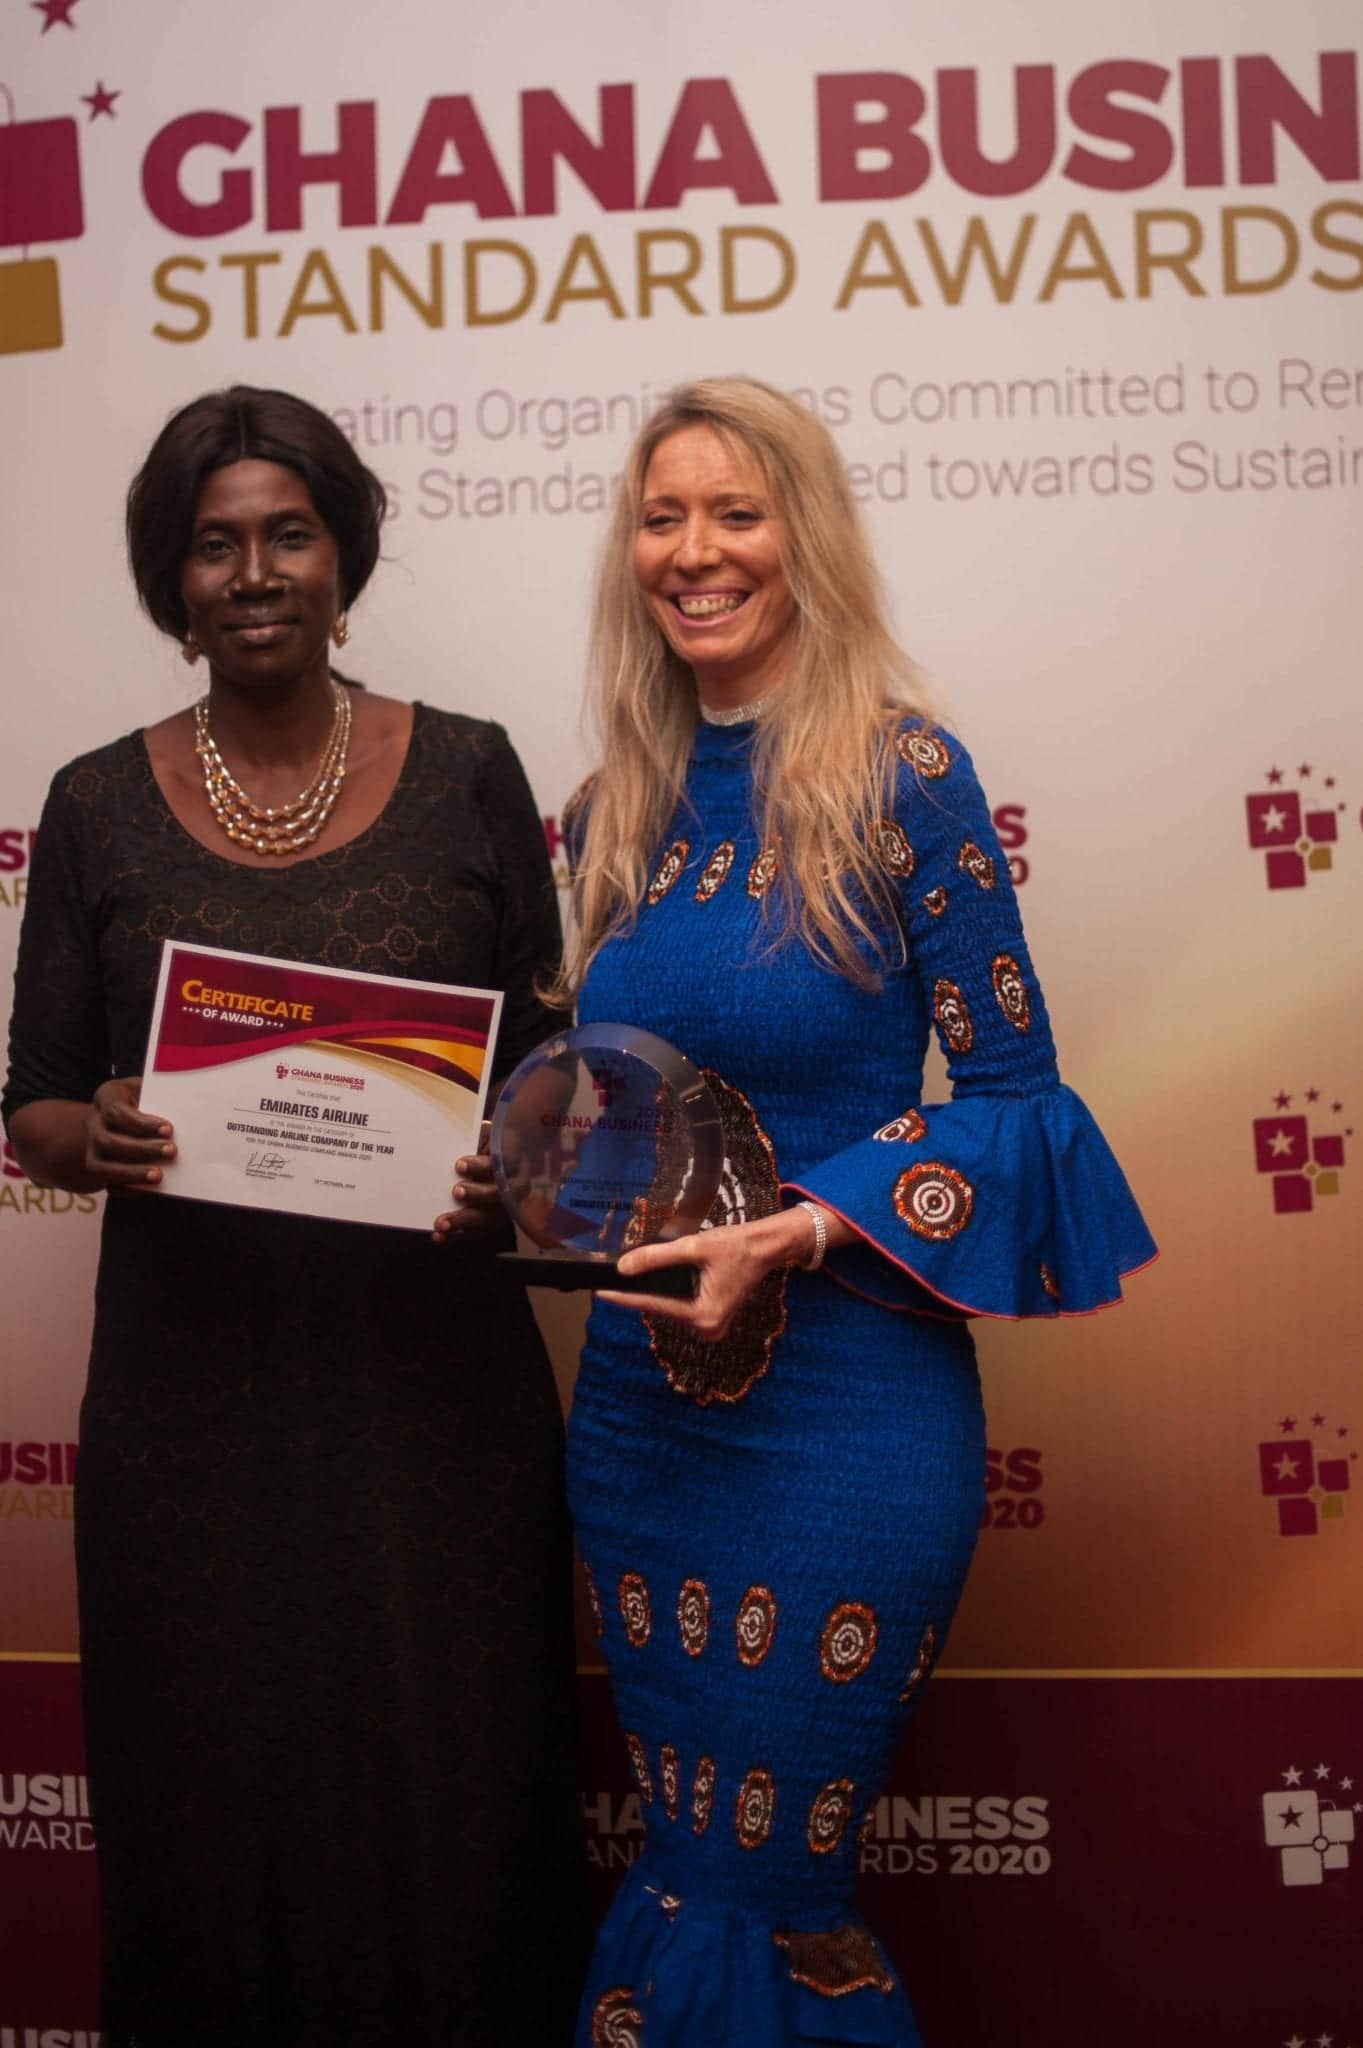 Emirates named Outstanding Airline Company of the Year at the coveted Ghana Business Standard Awards